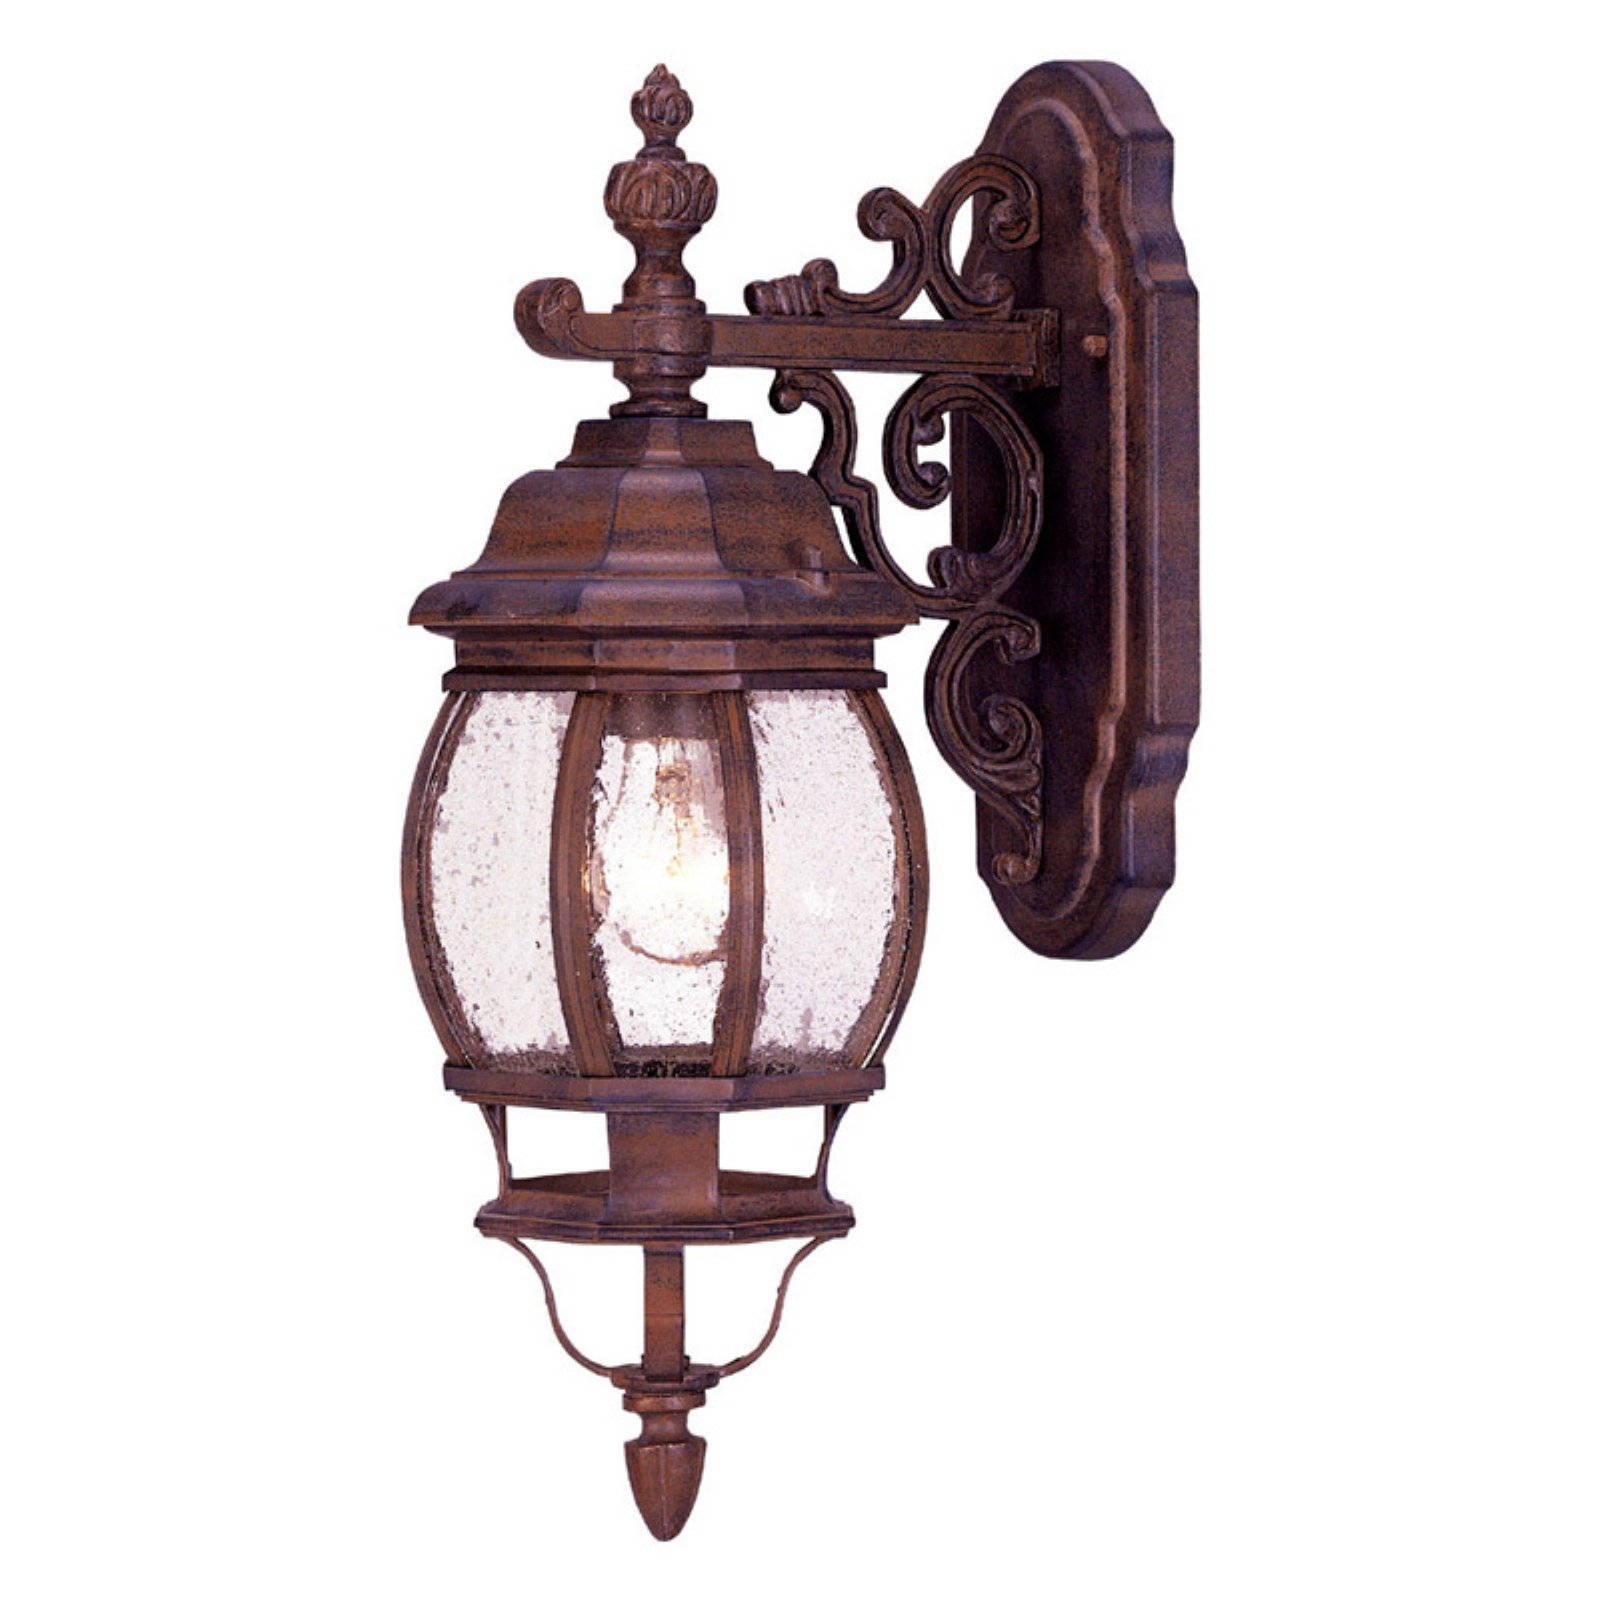 Acclaim Lighting Chateau 7.5 in. Outdoor Wall Mount Light Fixture